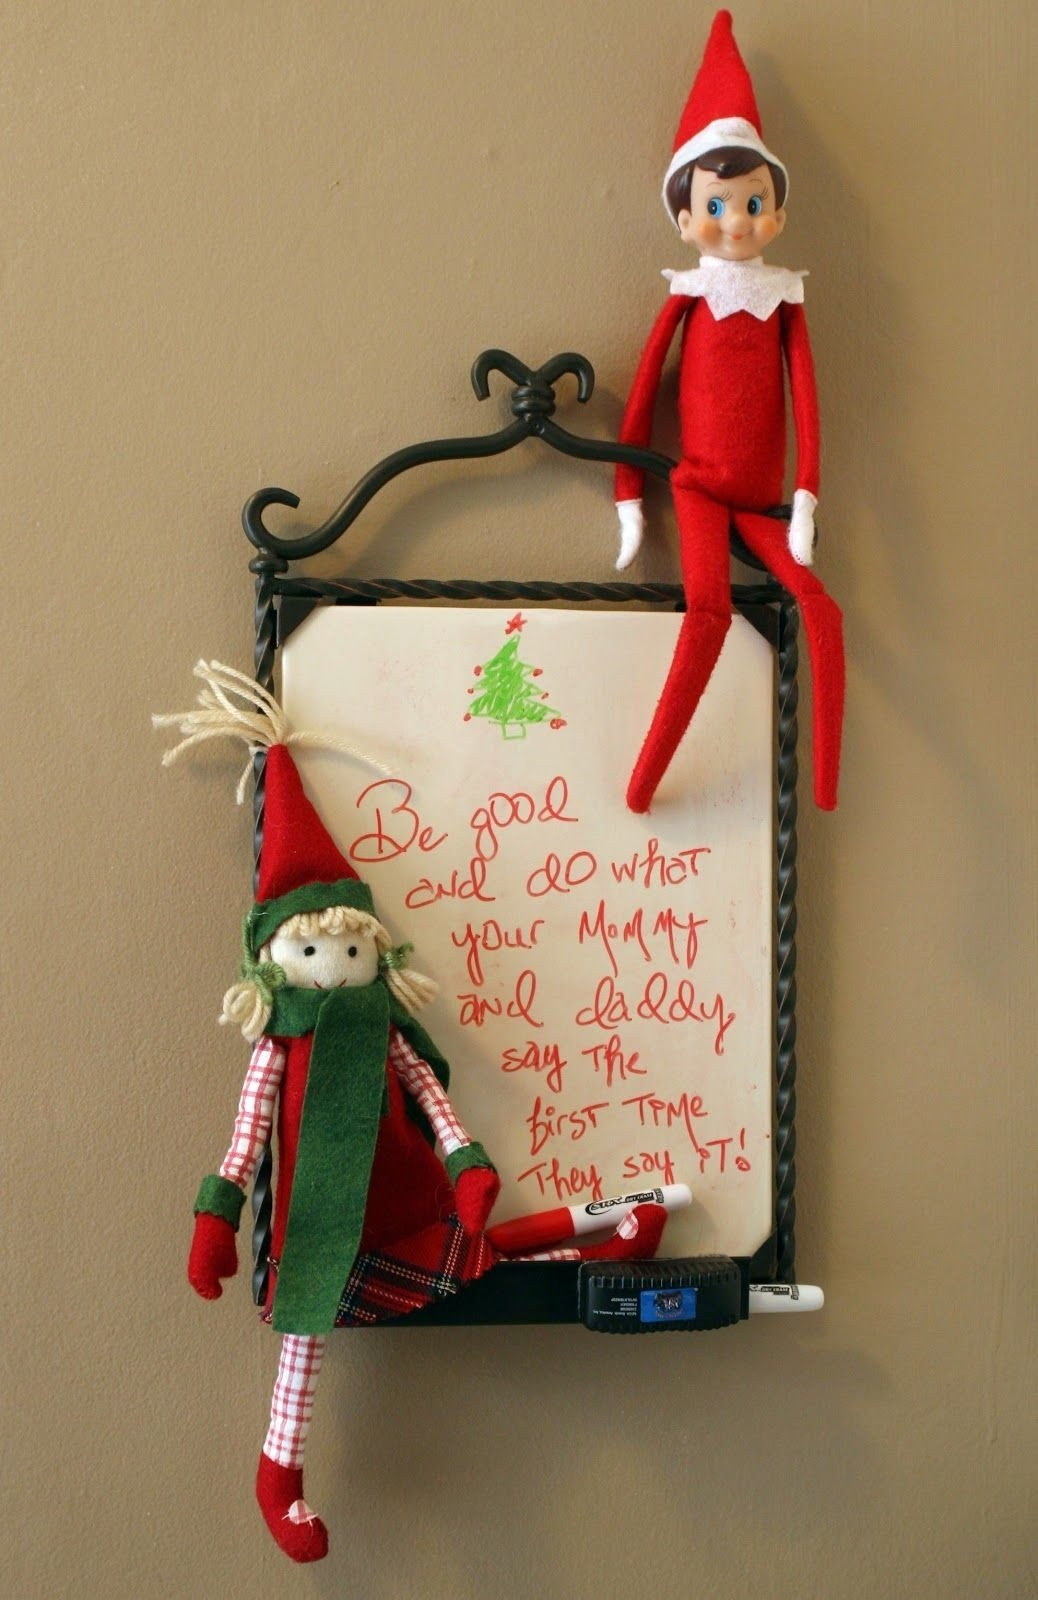 10 Elegant Pinterest Elf On The Shelf Ideas elf on a shelf ideas cooper could draw a picture of santa on the 1 2020